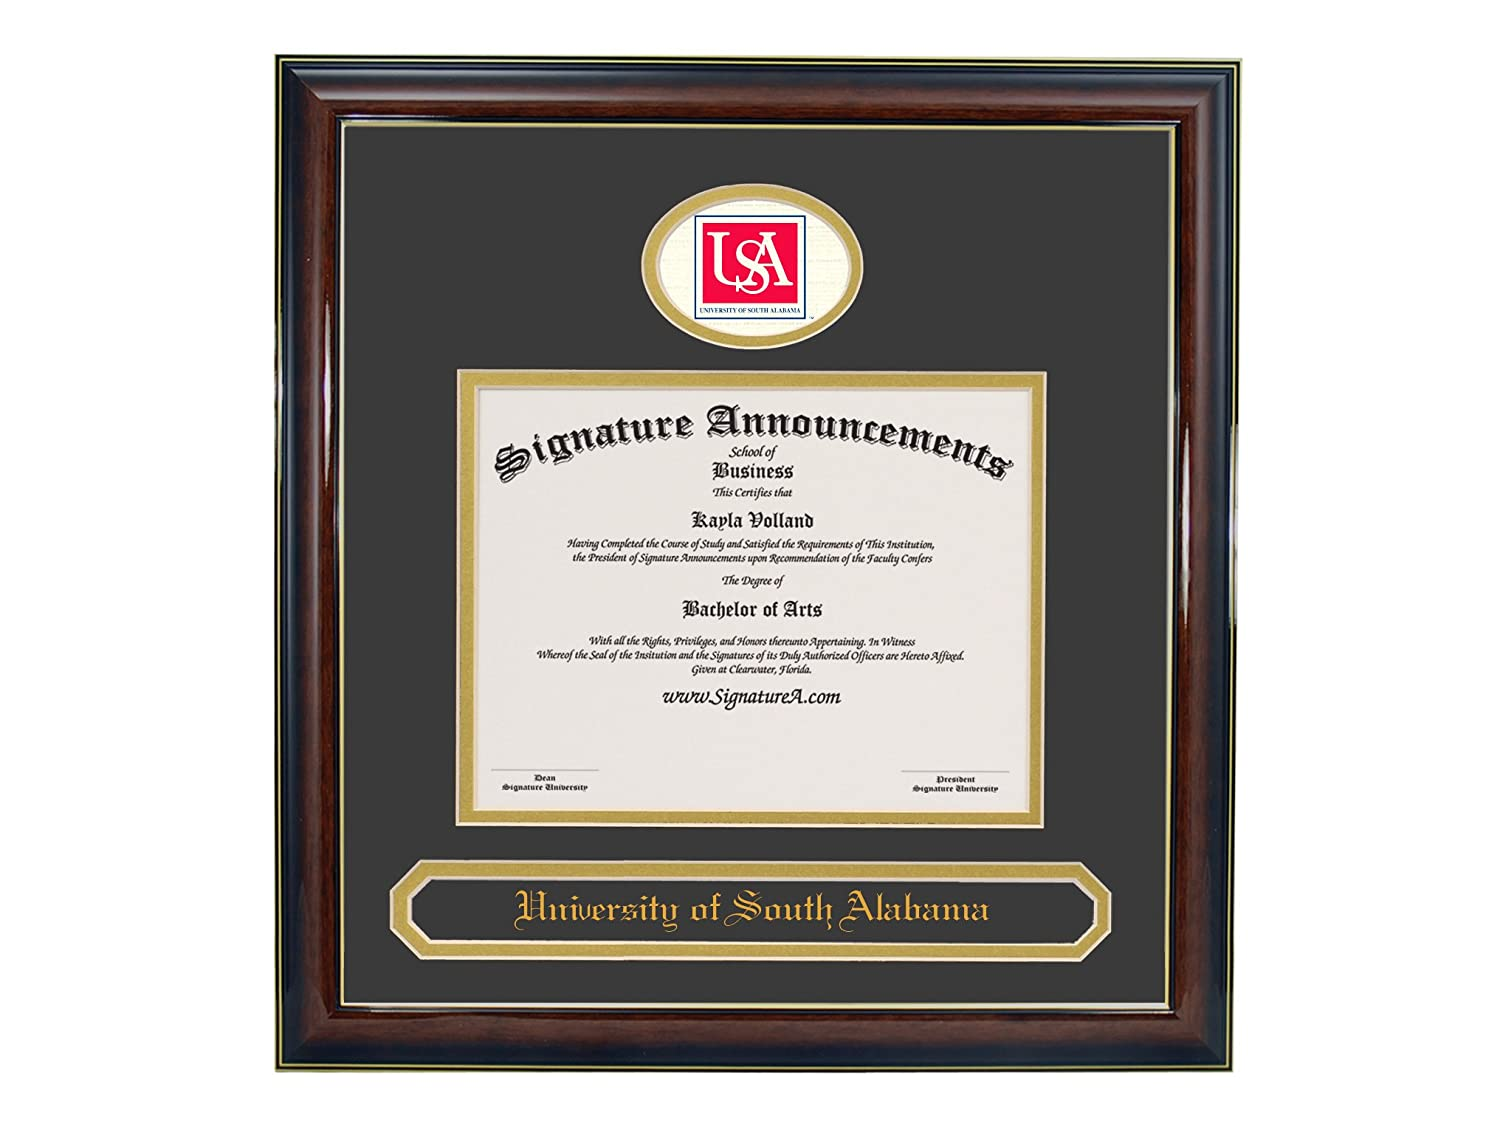 Professional//Doctor Sculpted Foil Seal /& Name Graduation Diploma Frame 16 x 16 Gold Accent Gloss Mahogany Signature Announcements University-of-South-Alabama Undergraduate